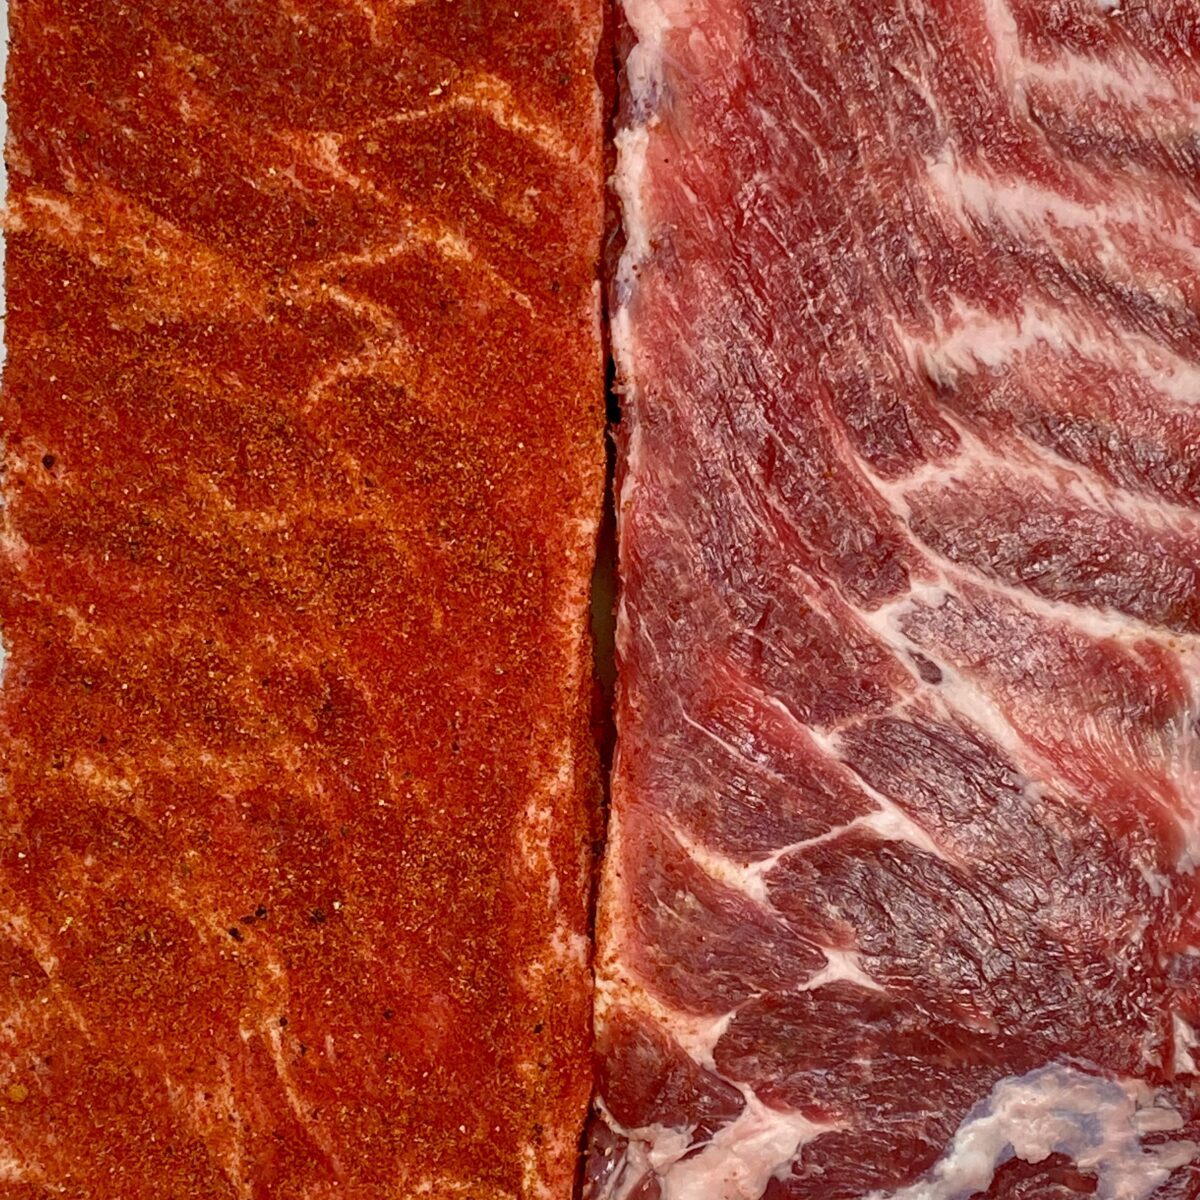 Overhead close up view of two racks of ribs side by side.  One on the left rubbed down with rib rub, the one on the right, not rubbed yet.